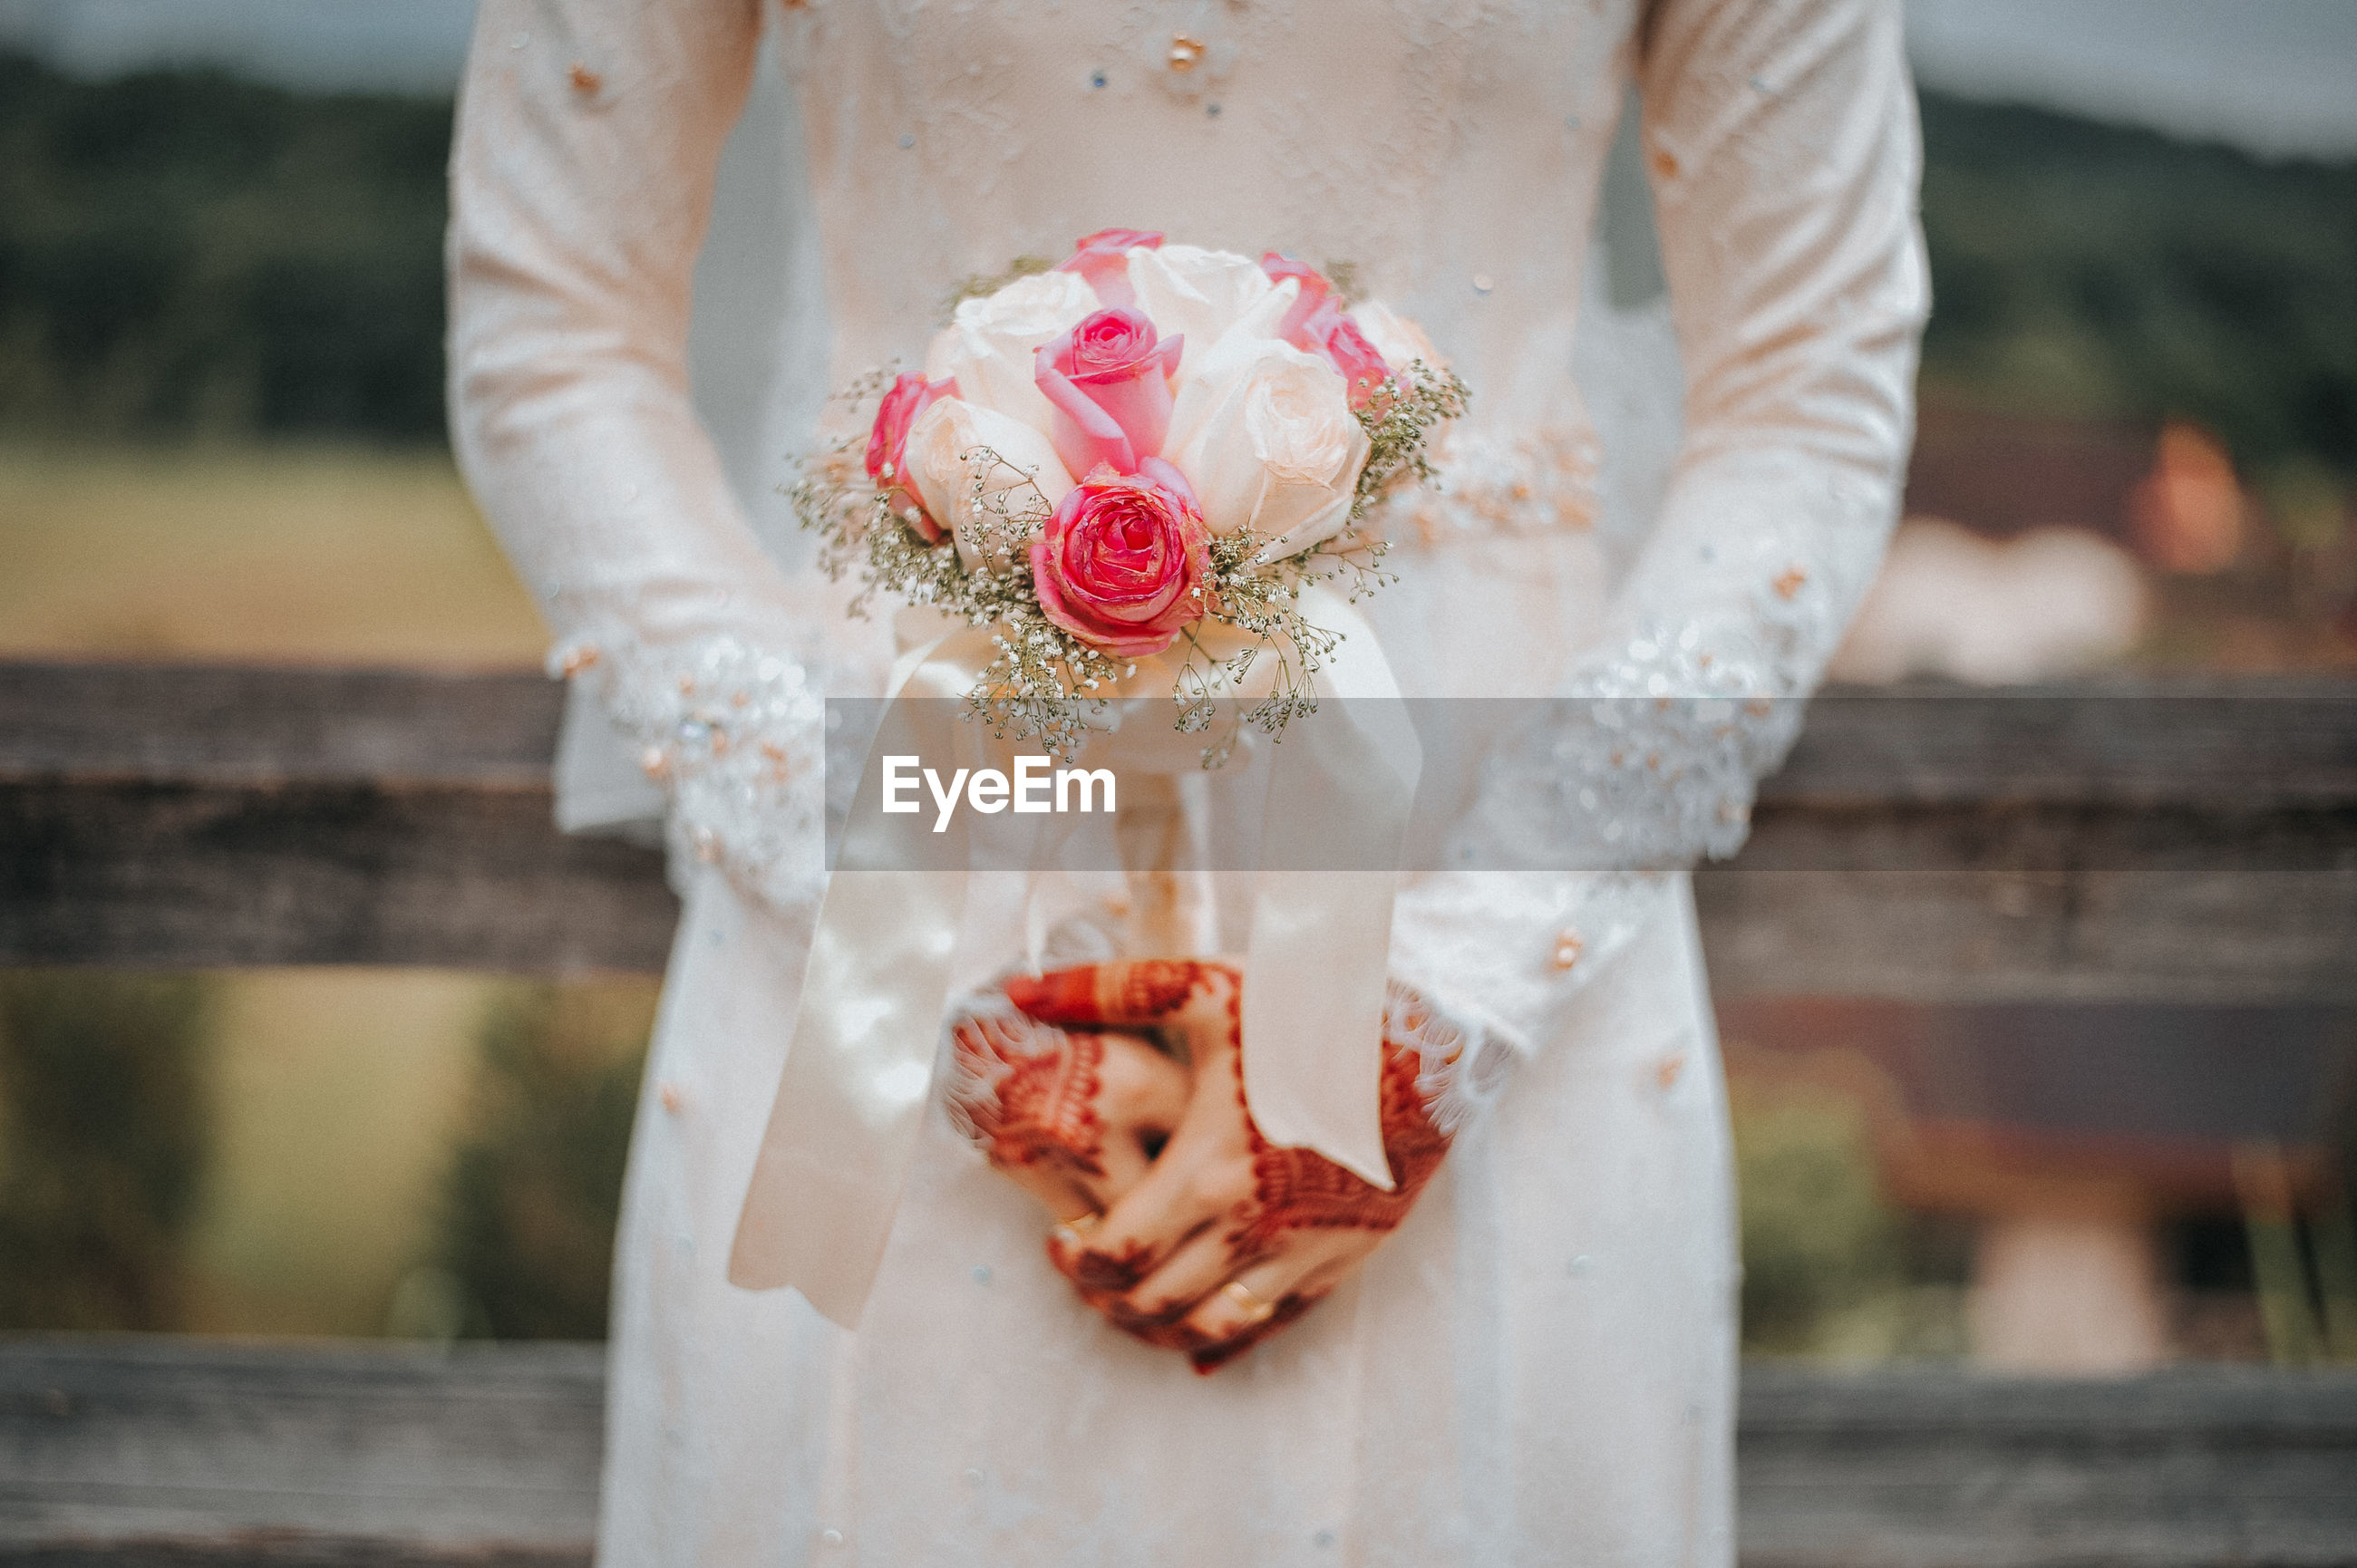 Midsection of bride holding bouquet during wedding